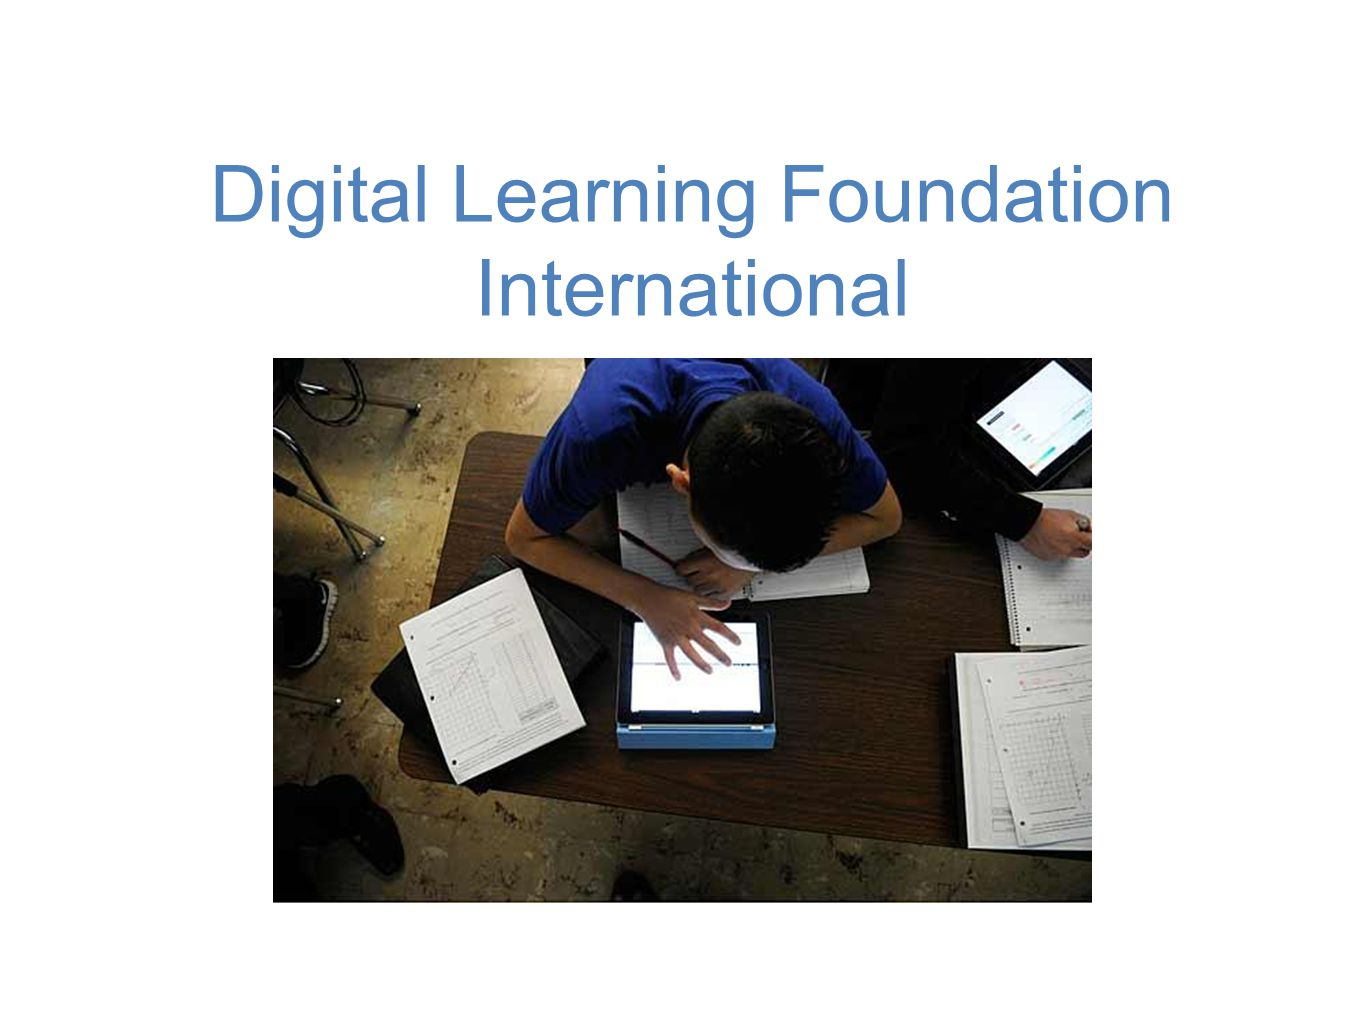 Digital Learning Foundation International